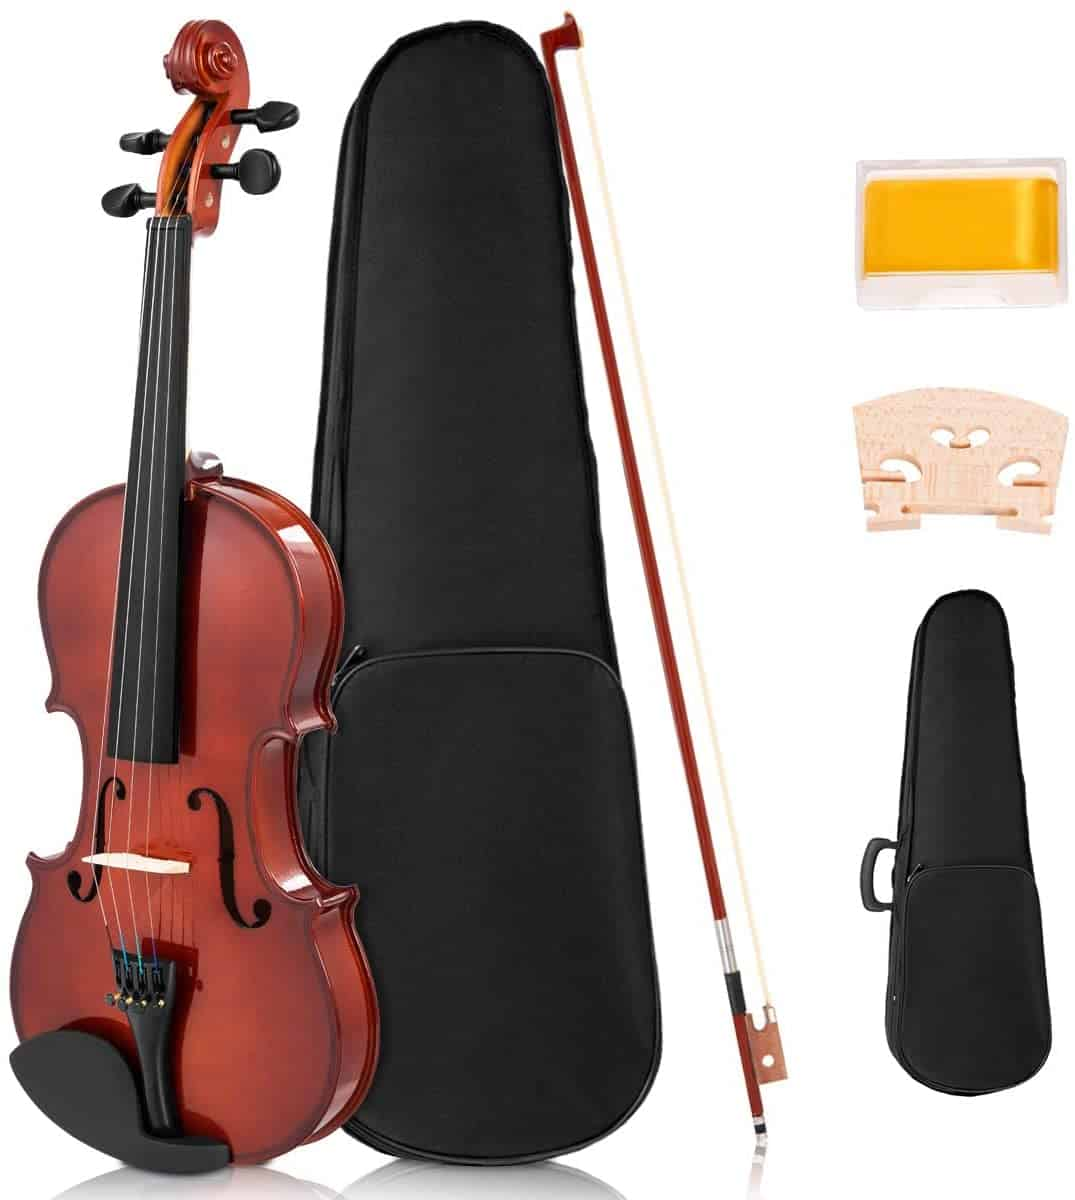 Costzon Full Size 4/4 Solid Wood Violin for Beginners.